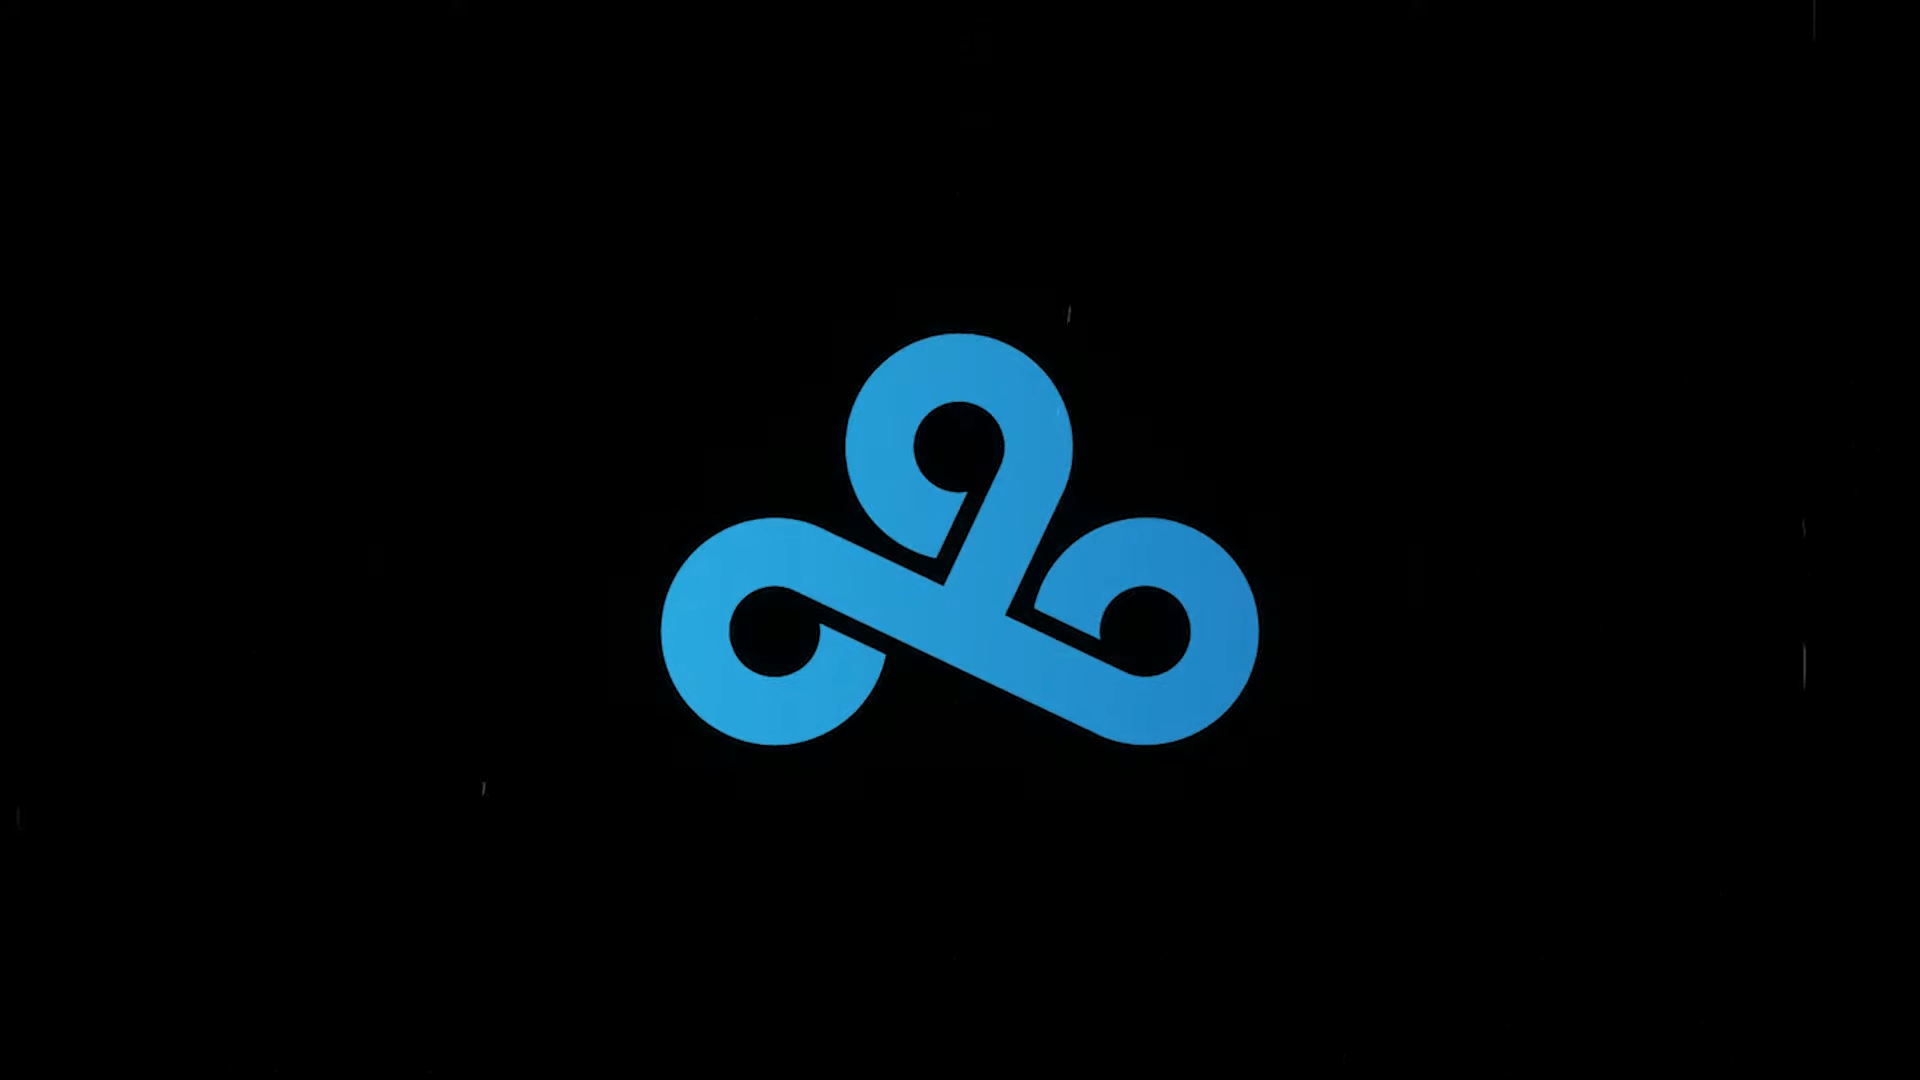 CS:GO – The First Showing Of The New Cloud9 Roster Is On December 11 With Flashpoint 2